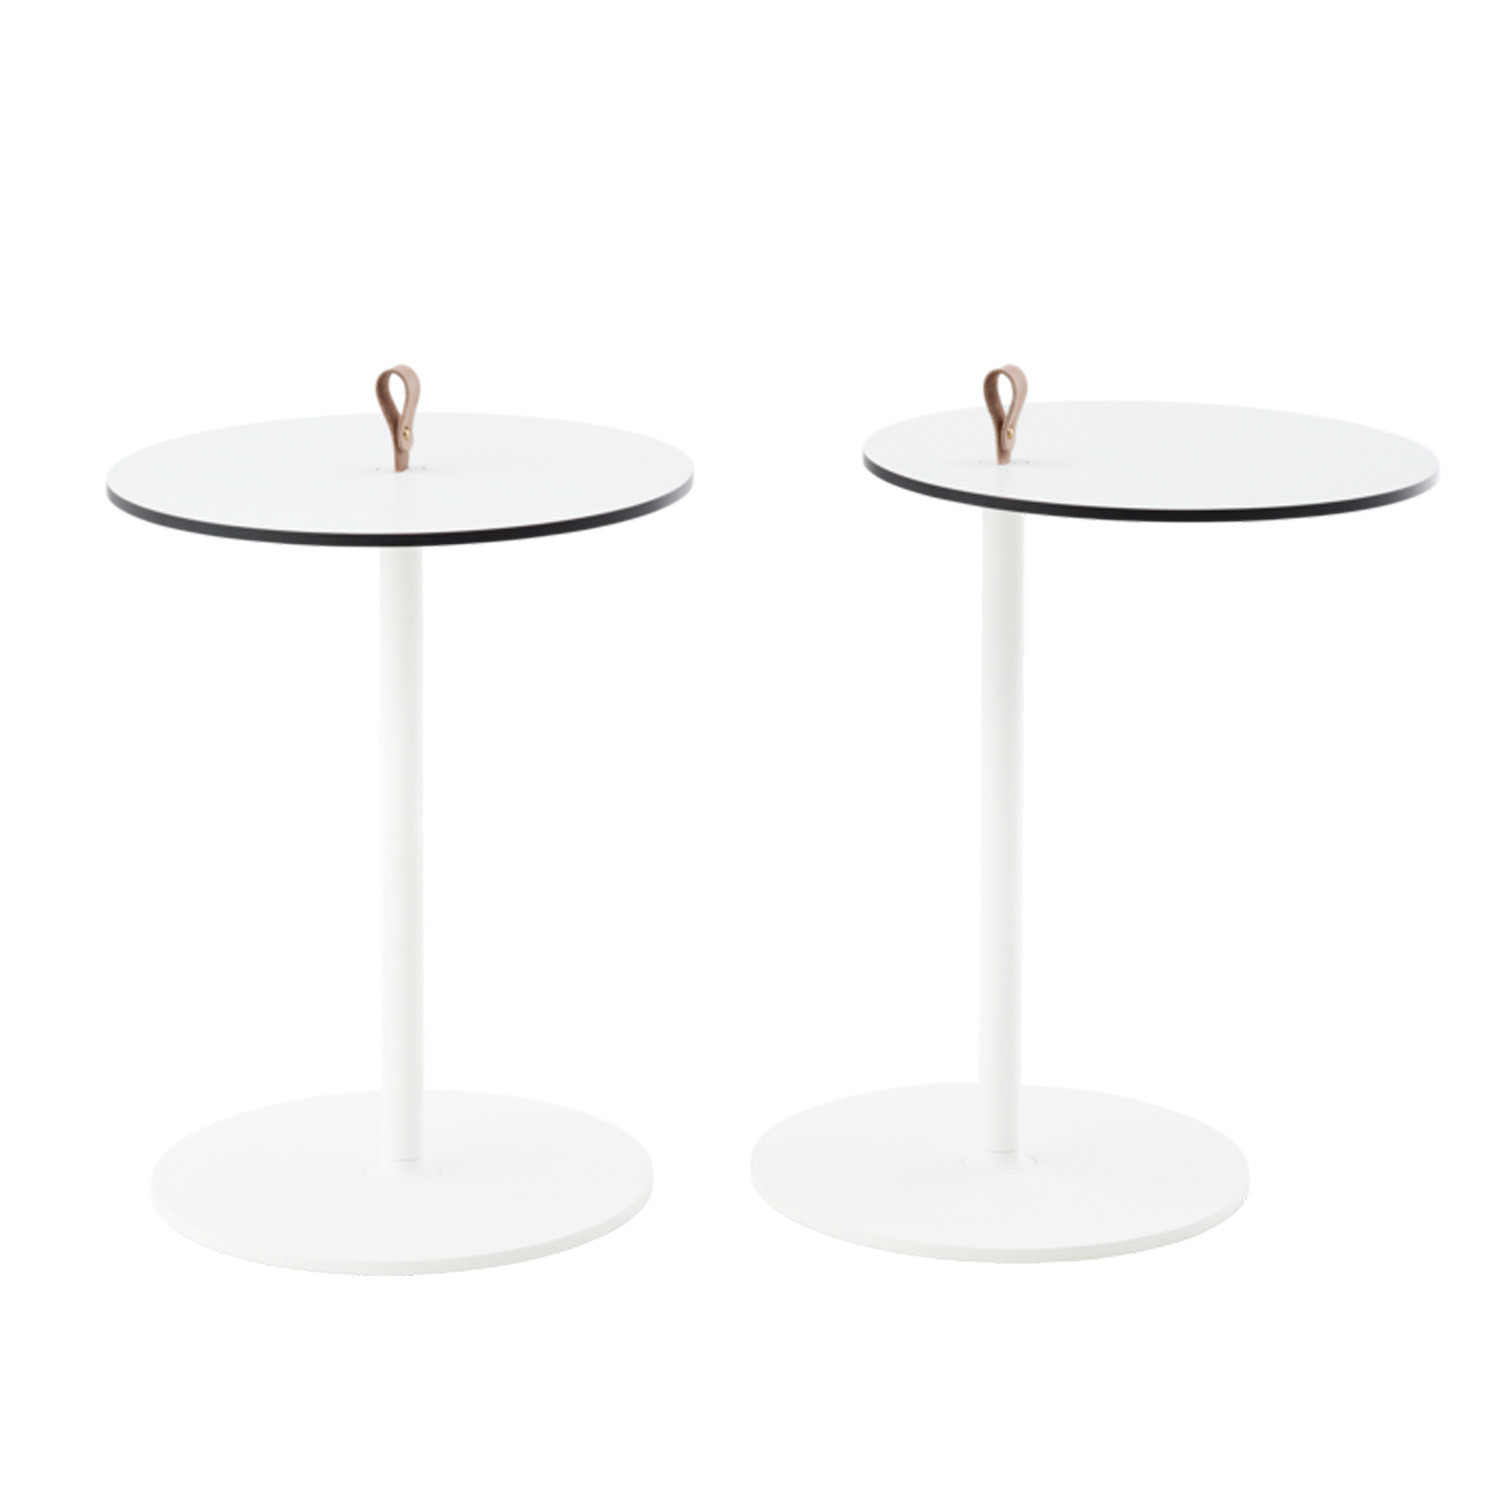 Strap Lounge Tables